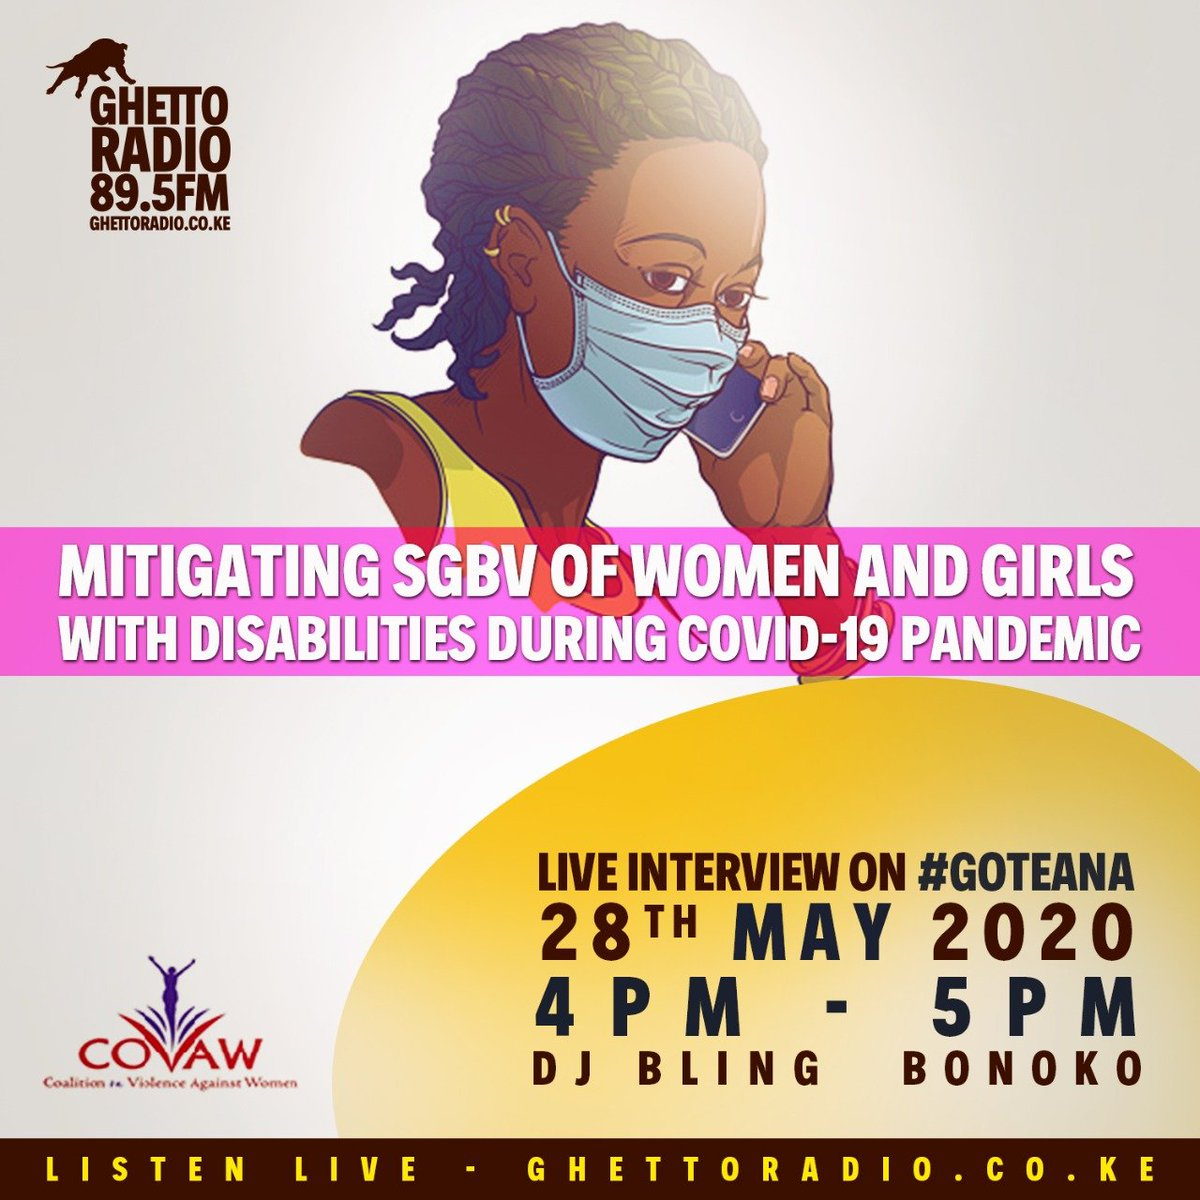 Issues gani zinalead to sexual and gender based violence mtaani during hii time ya #COVID19KE pandemic? Is it reduced income, stress, lack of jobs? Tune in #Goteana tubonge @covaw crew